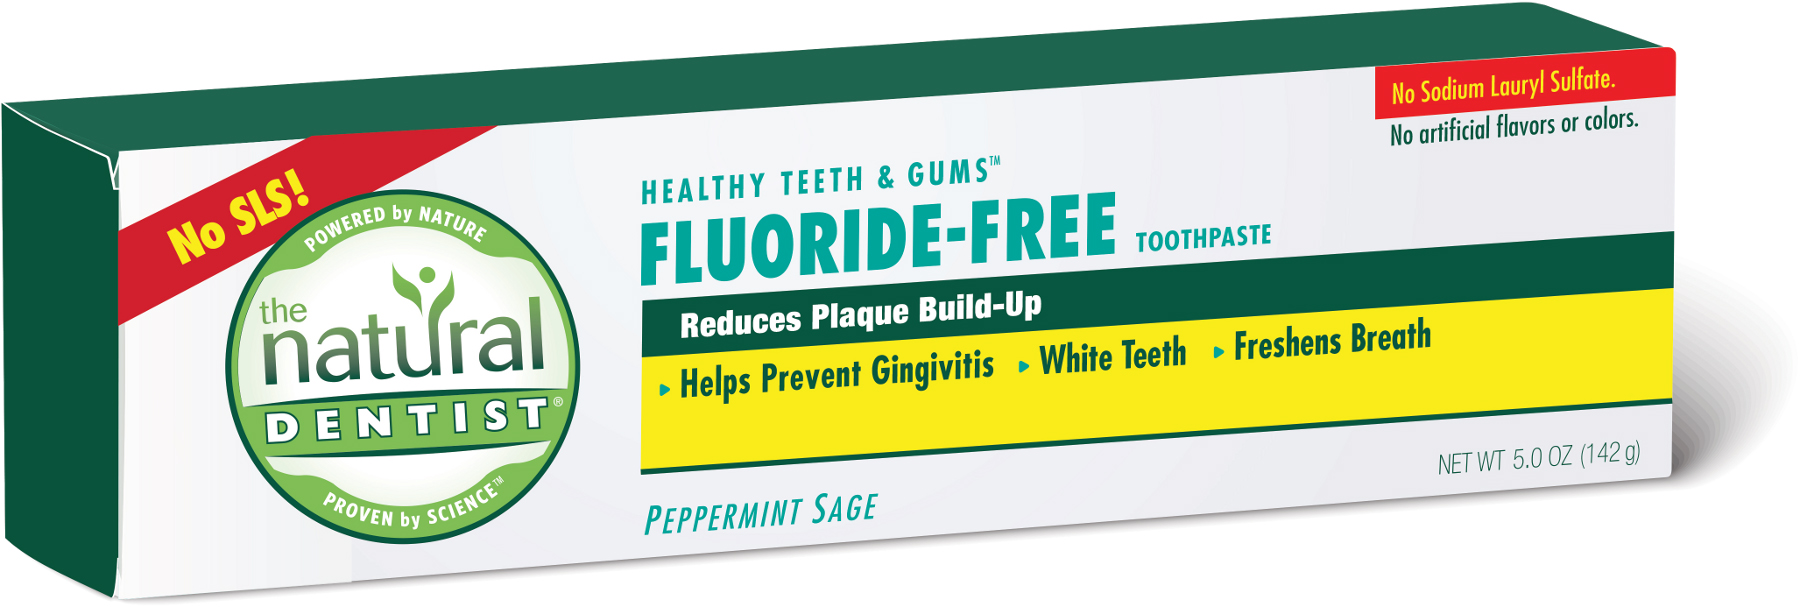 The Natural Dentist FluorideFree Toothpaste Peppermint Sage 5 oz